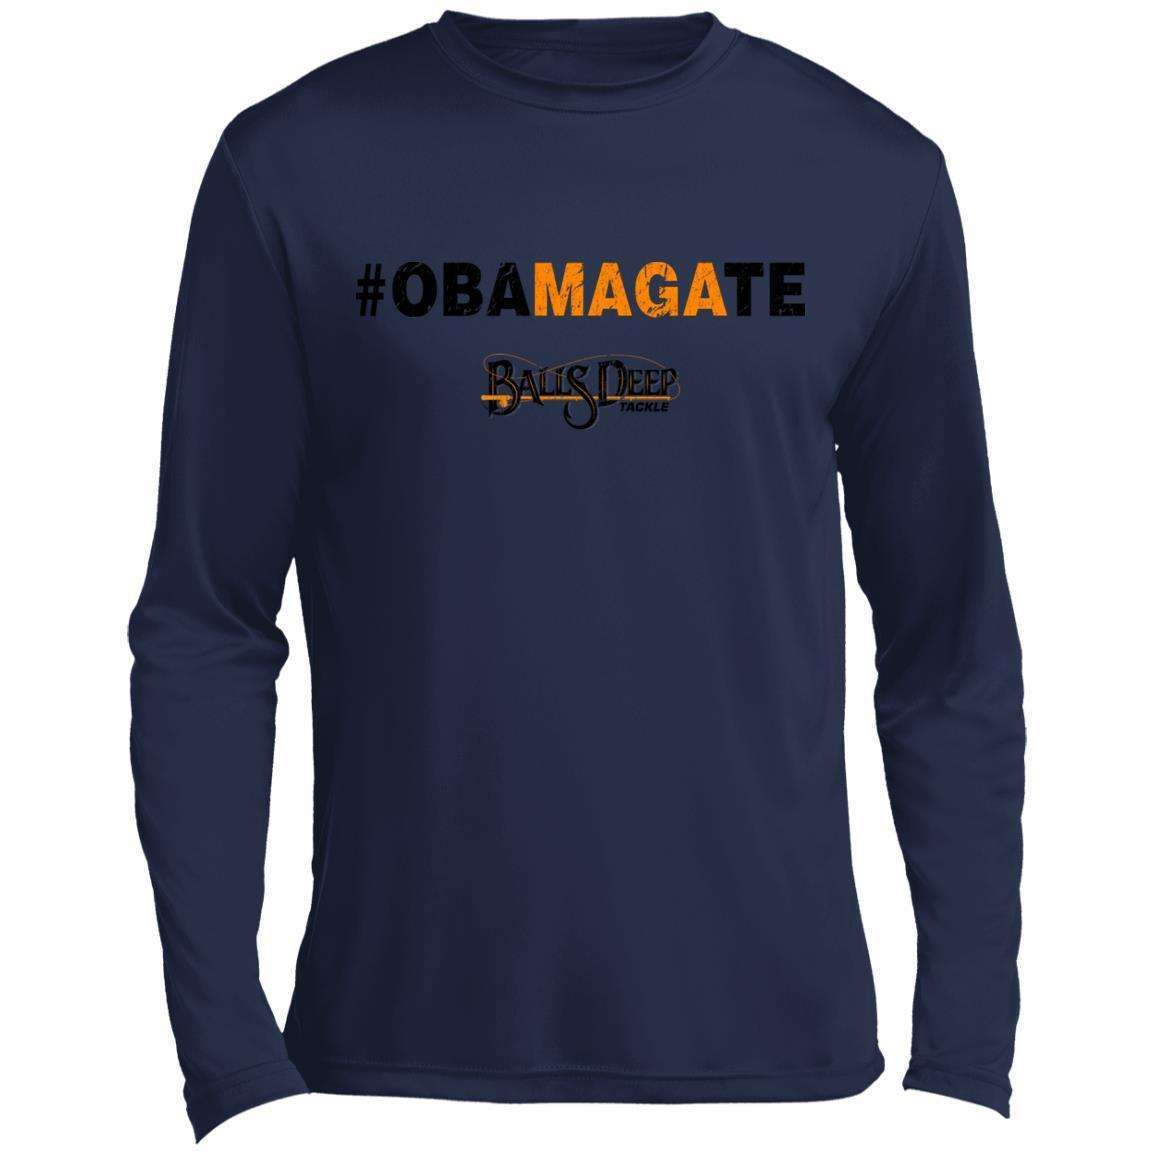 ObaMAGAte Performance Long Sleeve